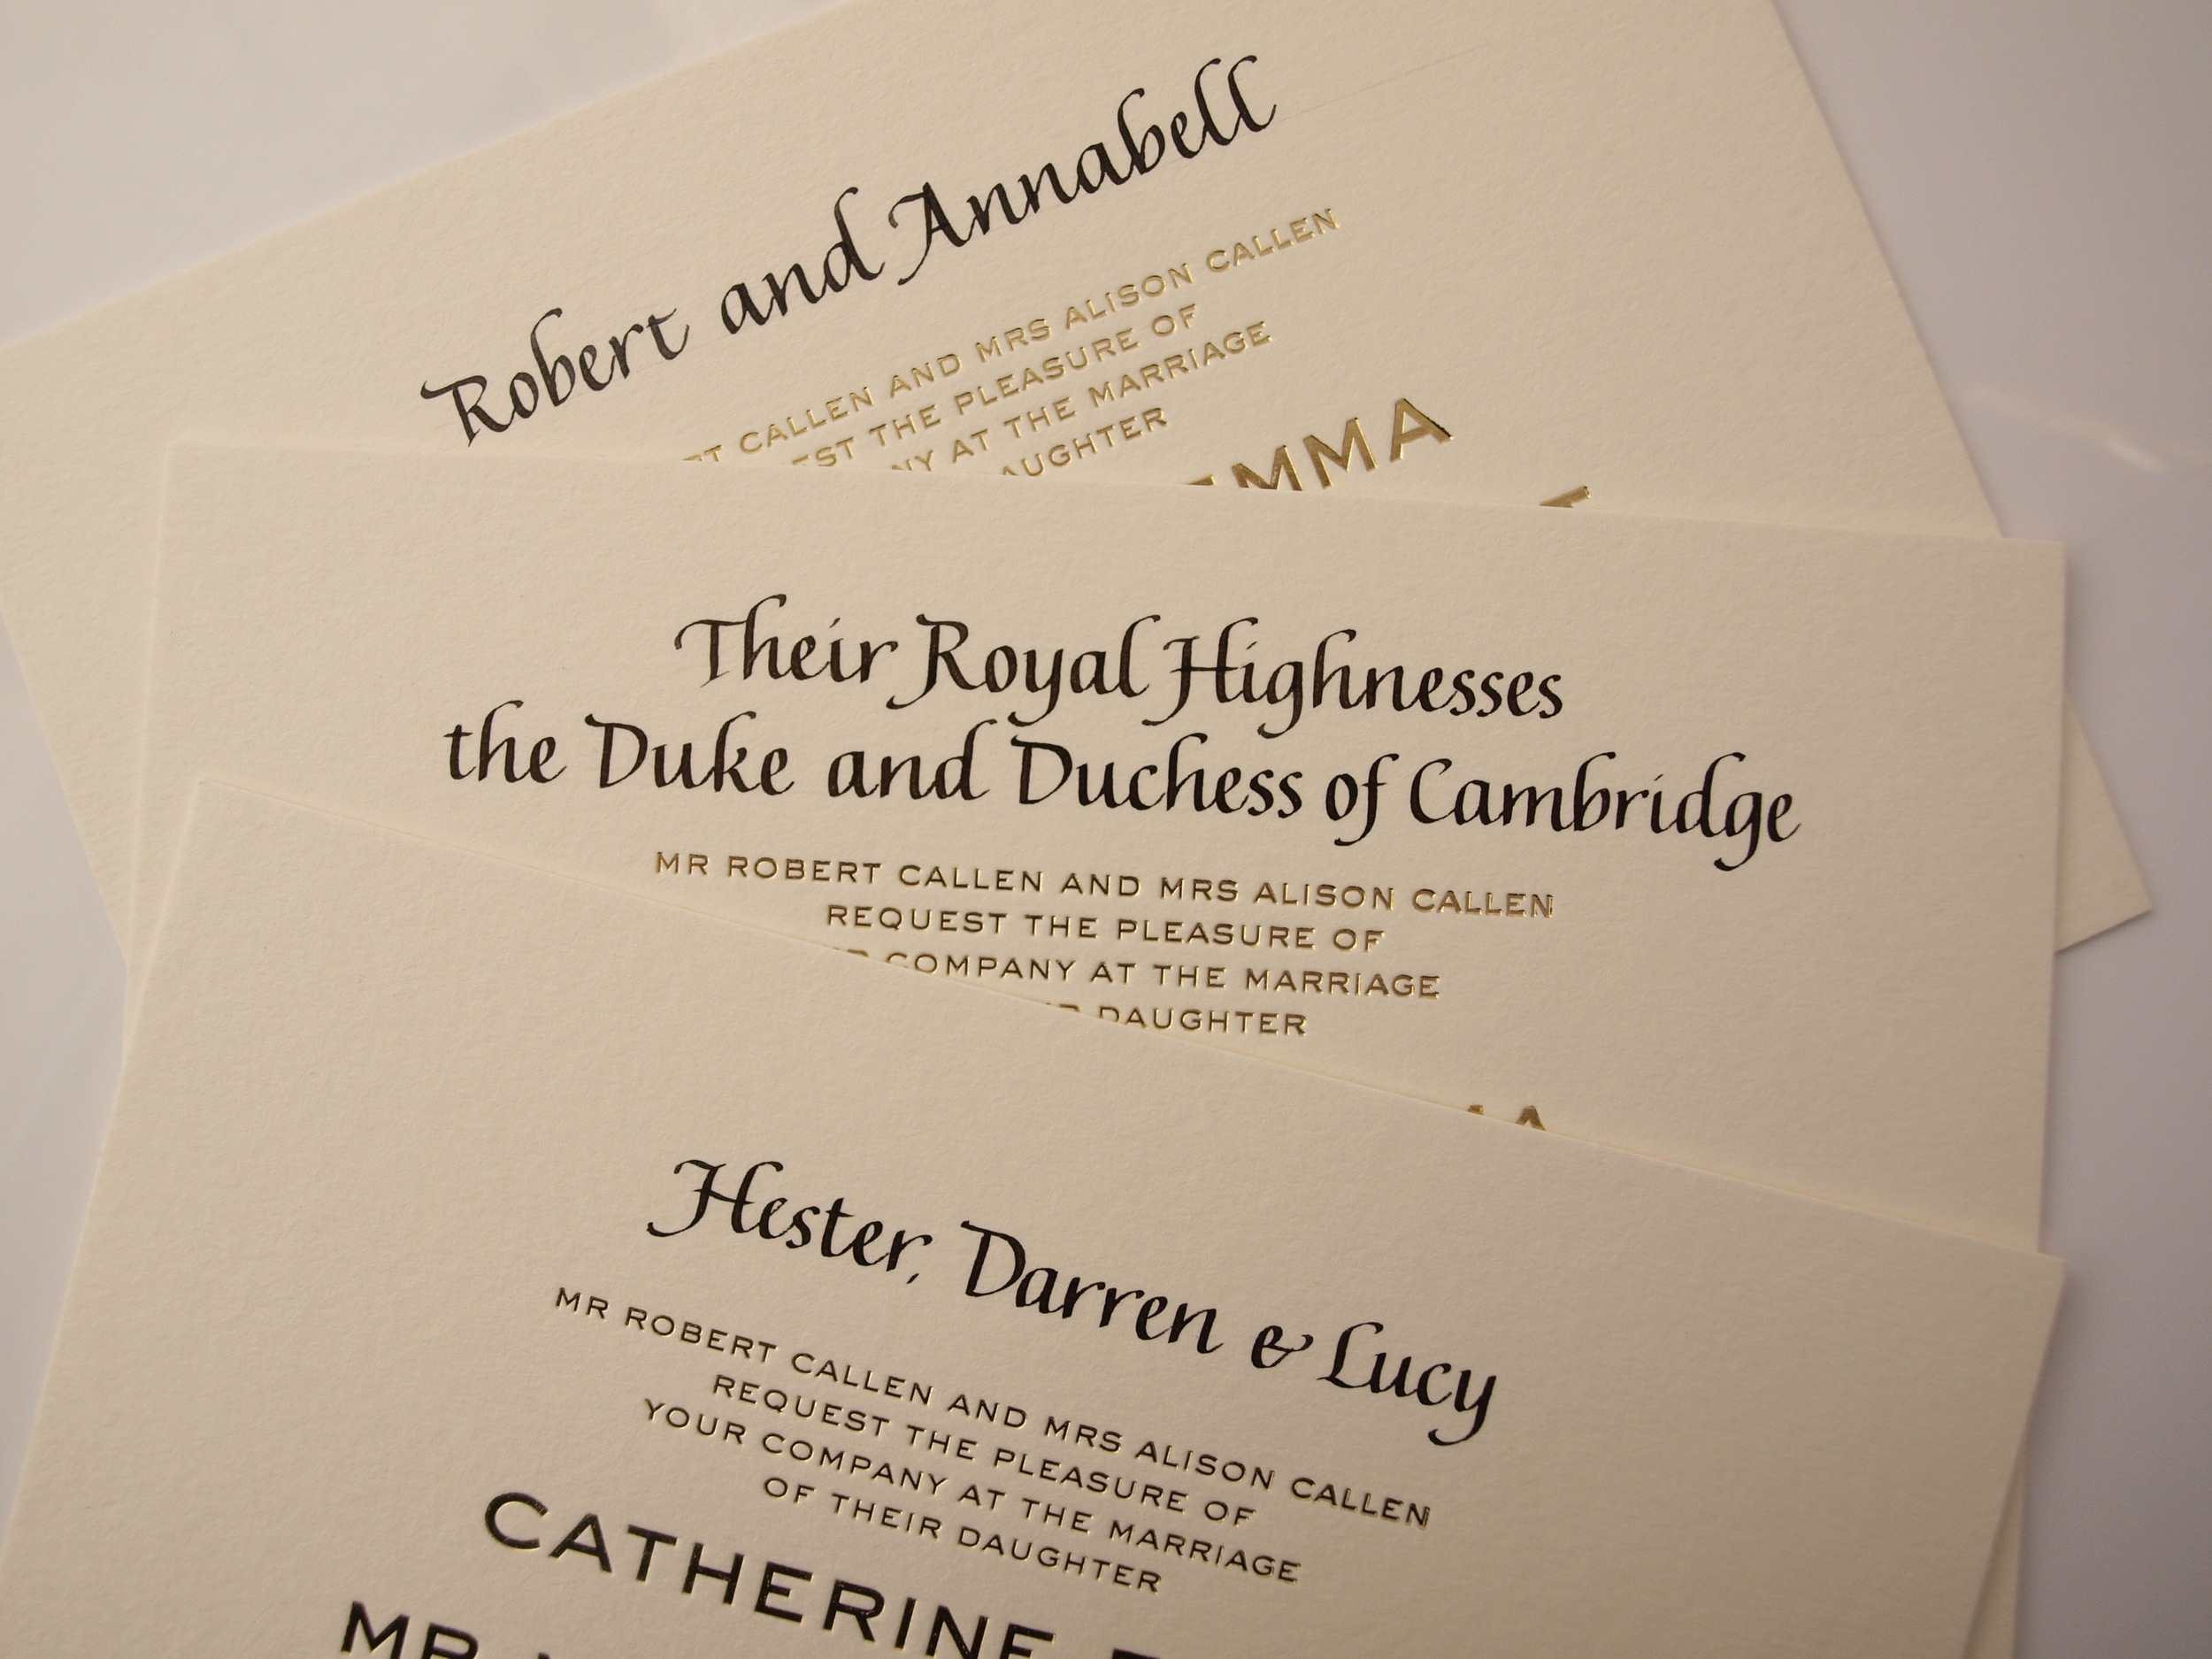 Flourished italic gold invitations 2.jpg